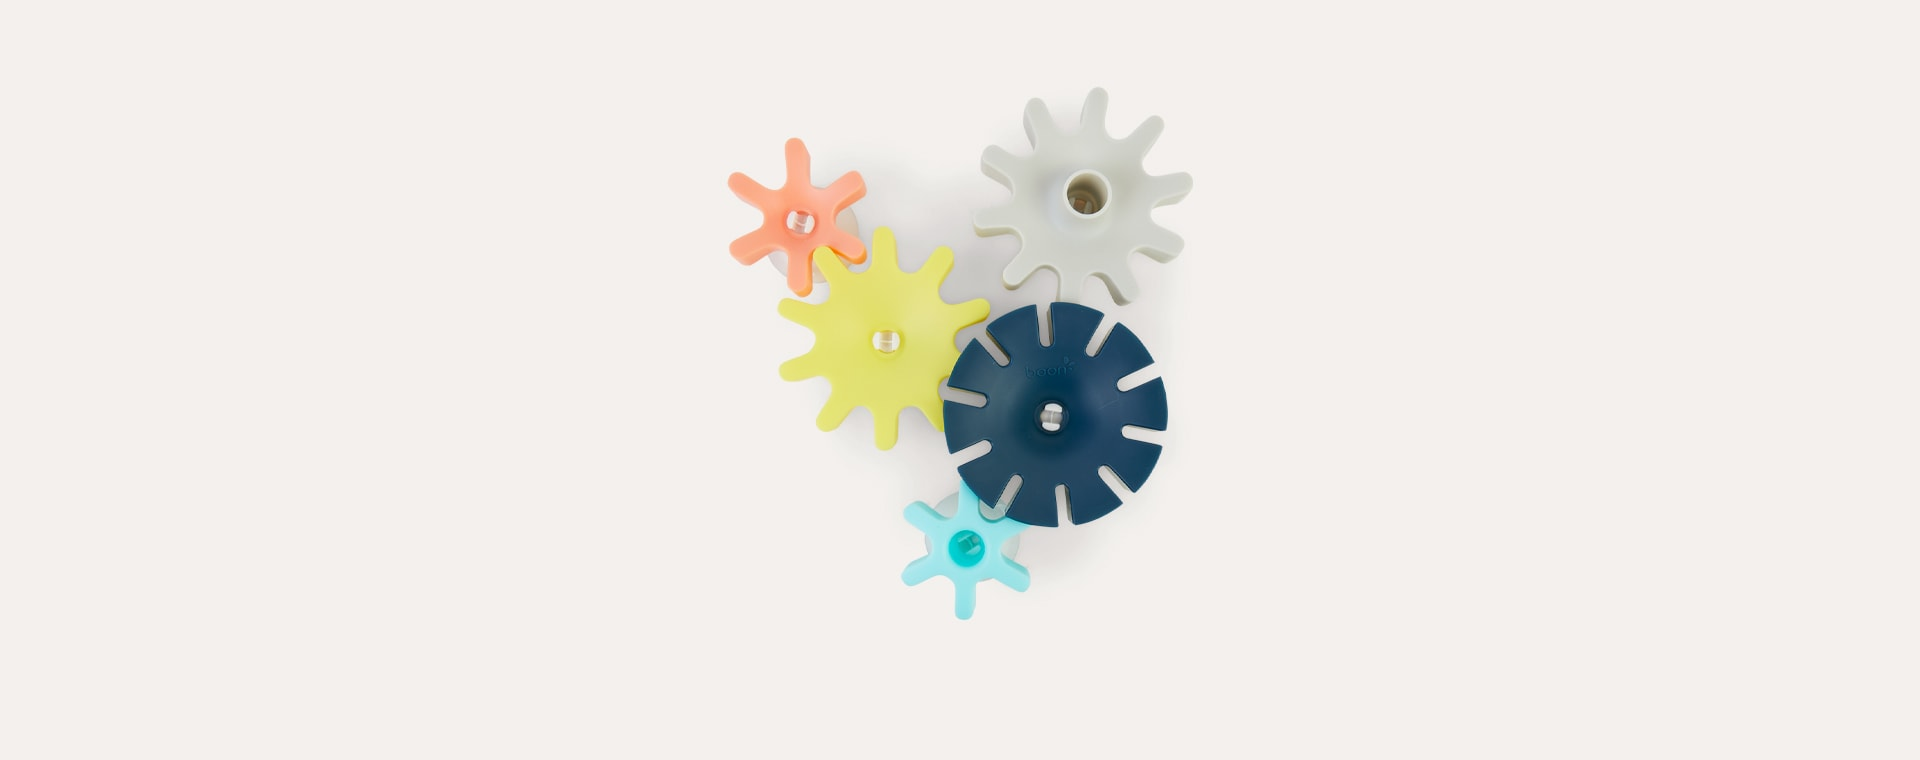 Blue Mix Boon Cogs Water Gears Bath Toy